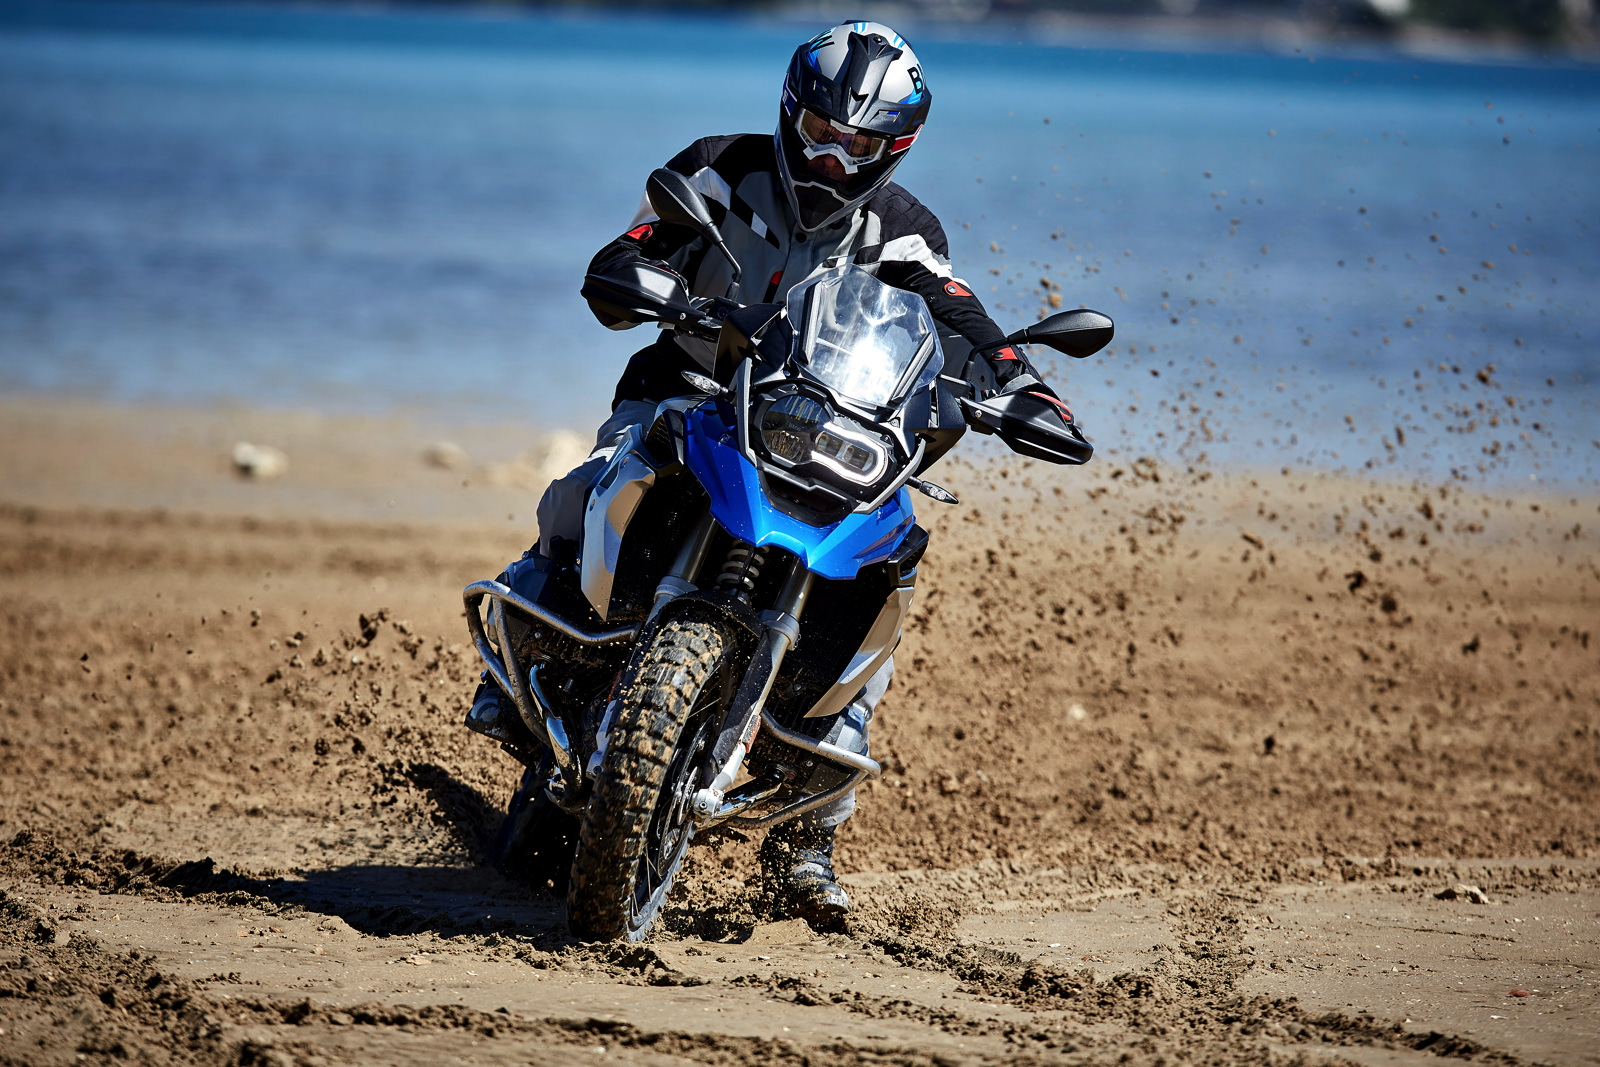 New BMW R 1200 GS ready to explore the most remote corners of the earth